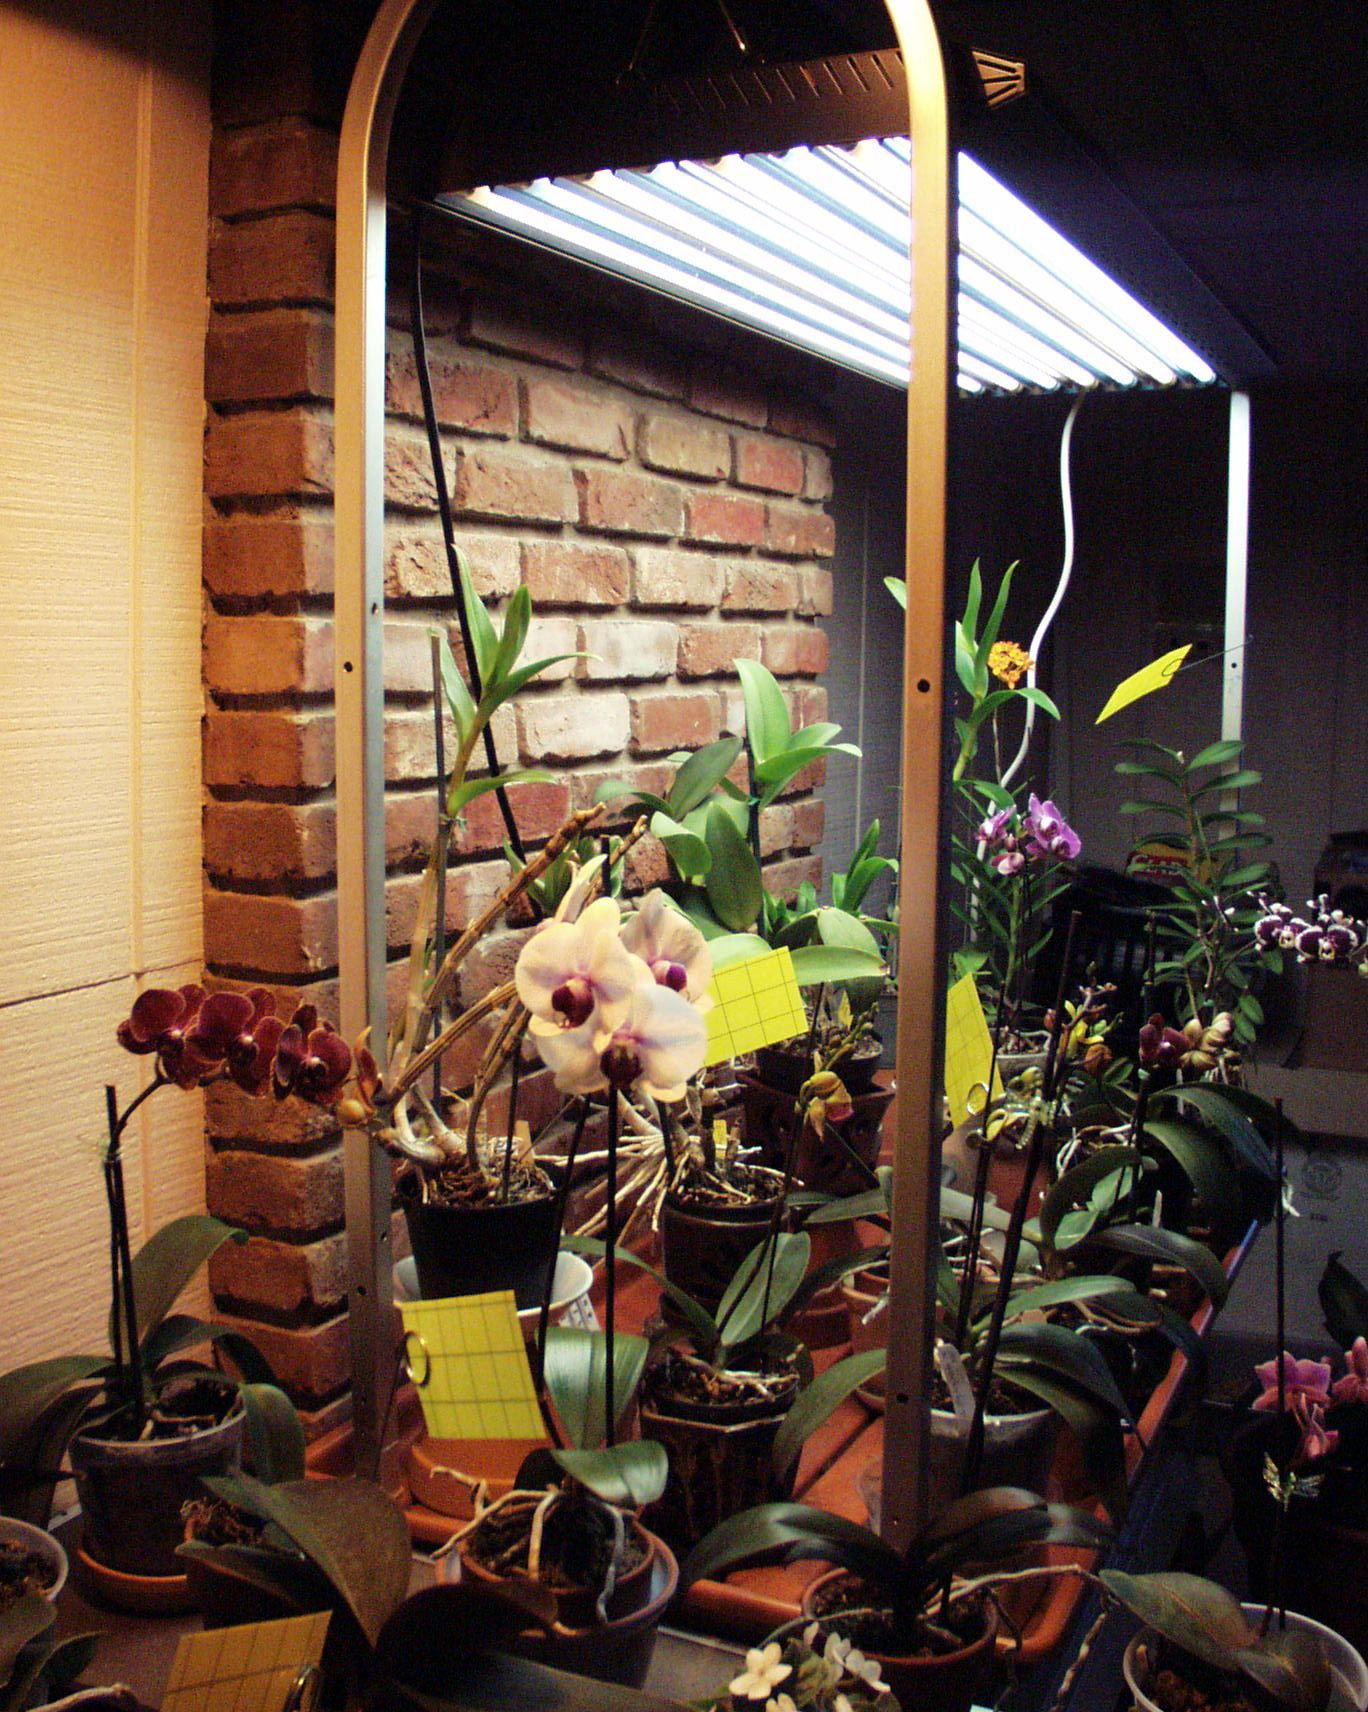 orchid collection under t5 high output fluorescent grow. Black Bedroom Furniture Sets. Home Design Ideas